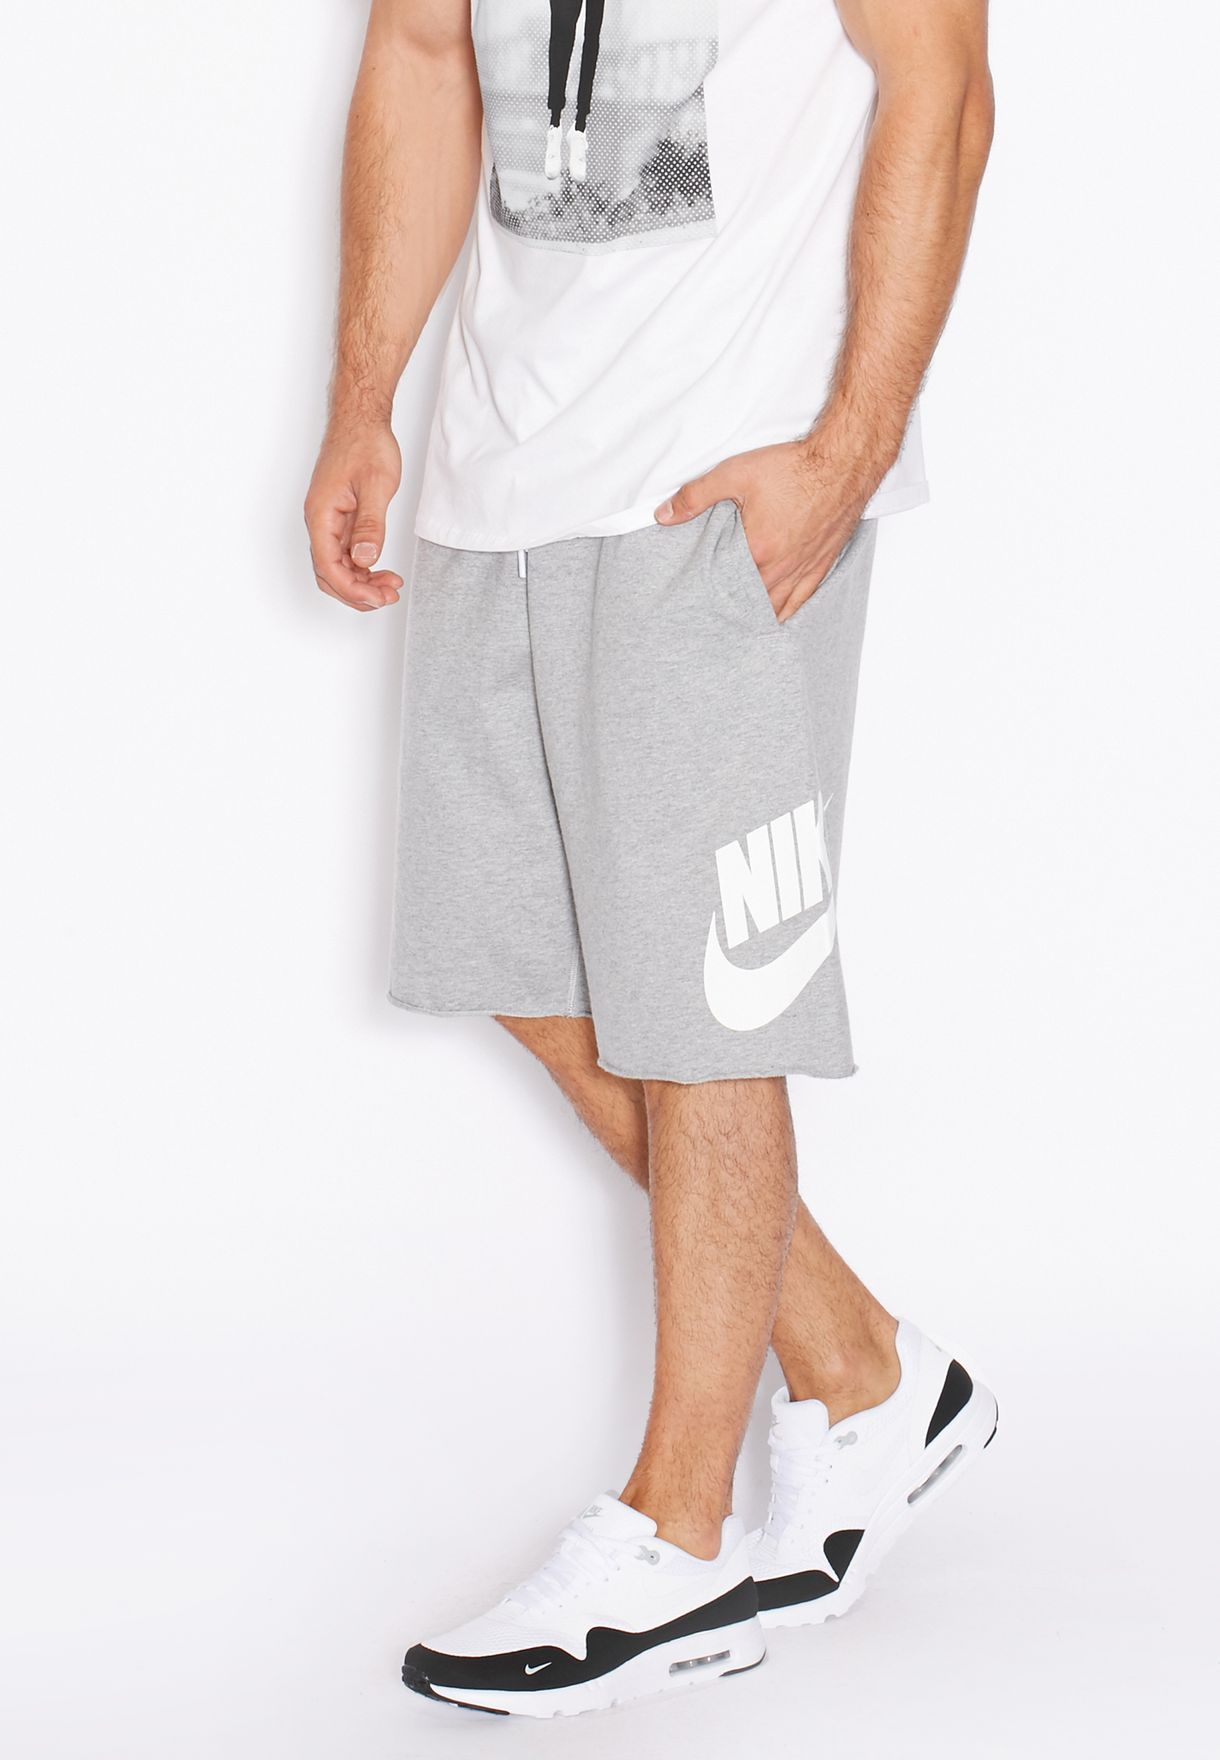 984c699e85b9 Shop Nike grey Alumni Solstice Shorts 728691-063 for Men in Kuwait -  NI727AT91DIM